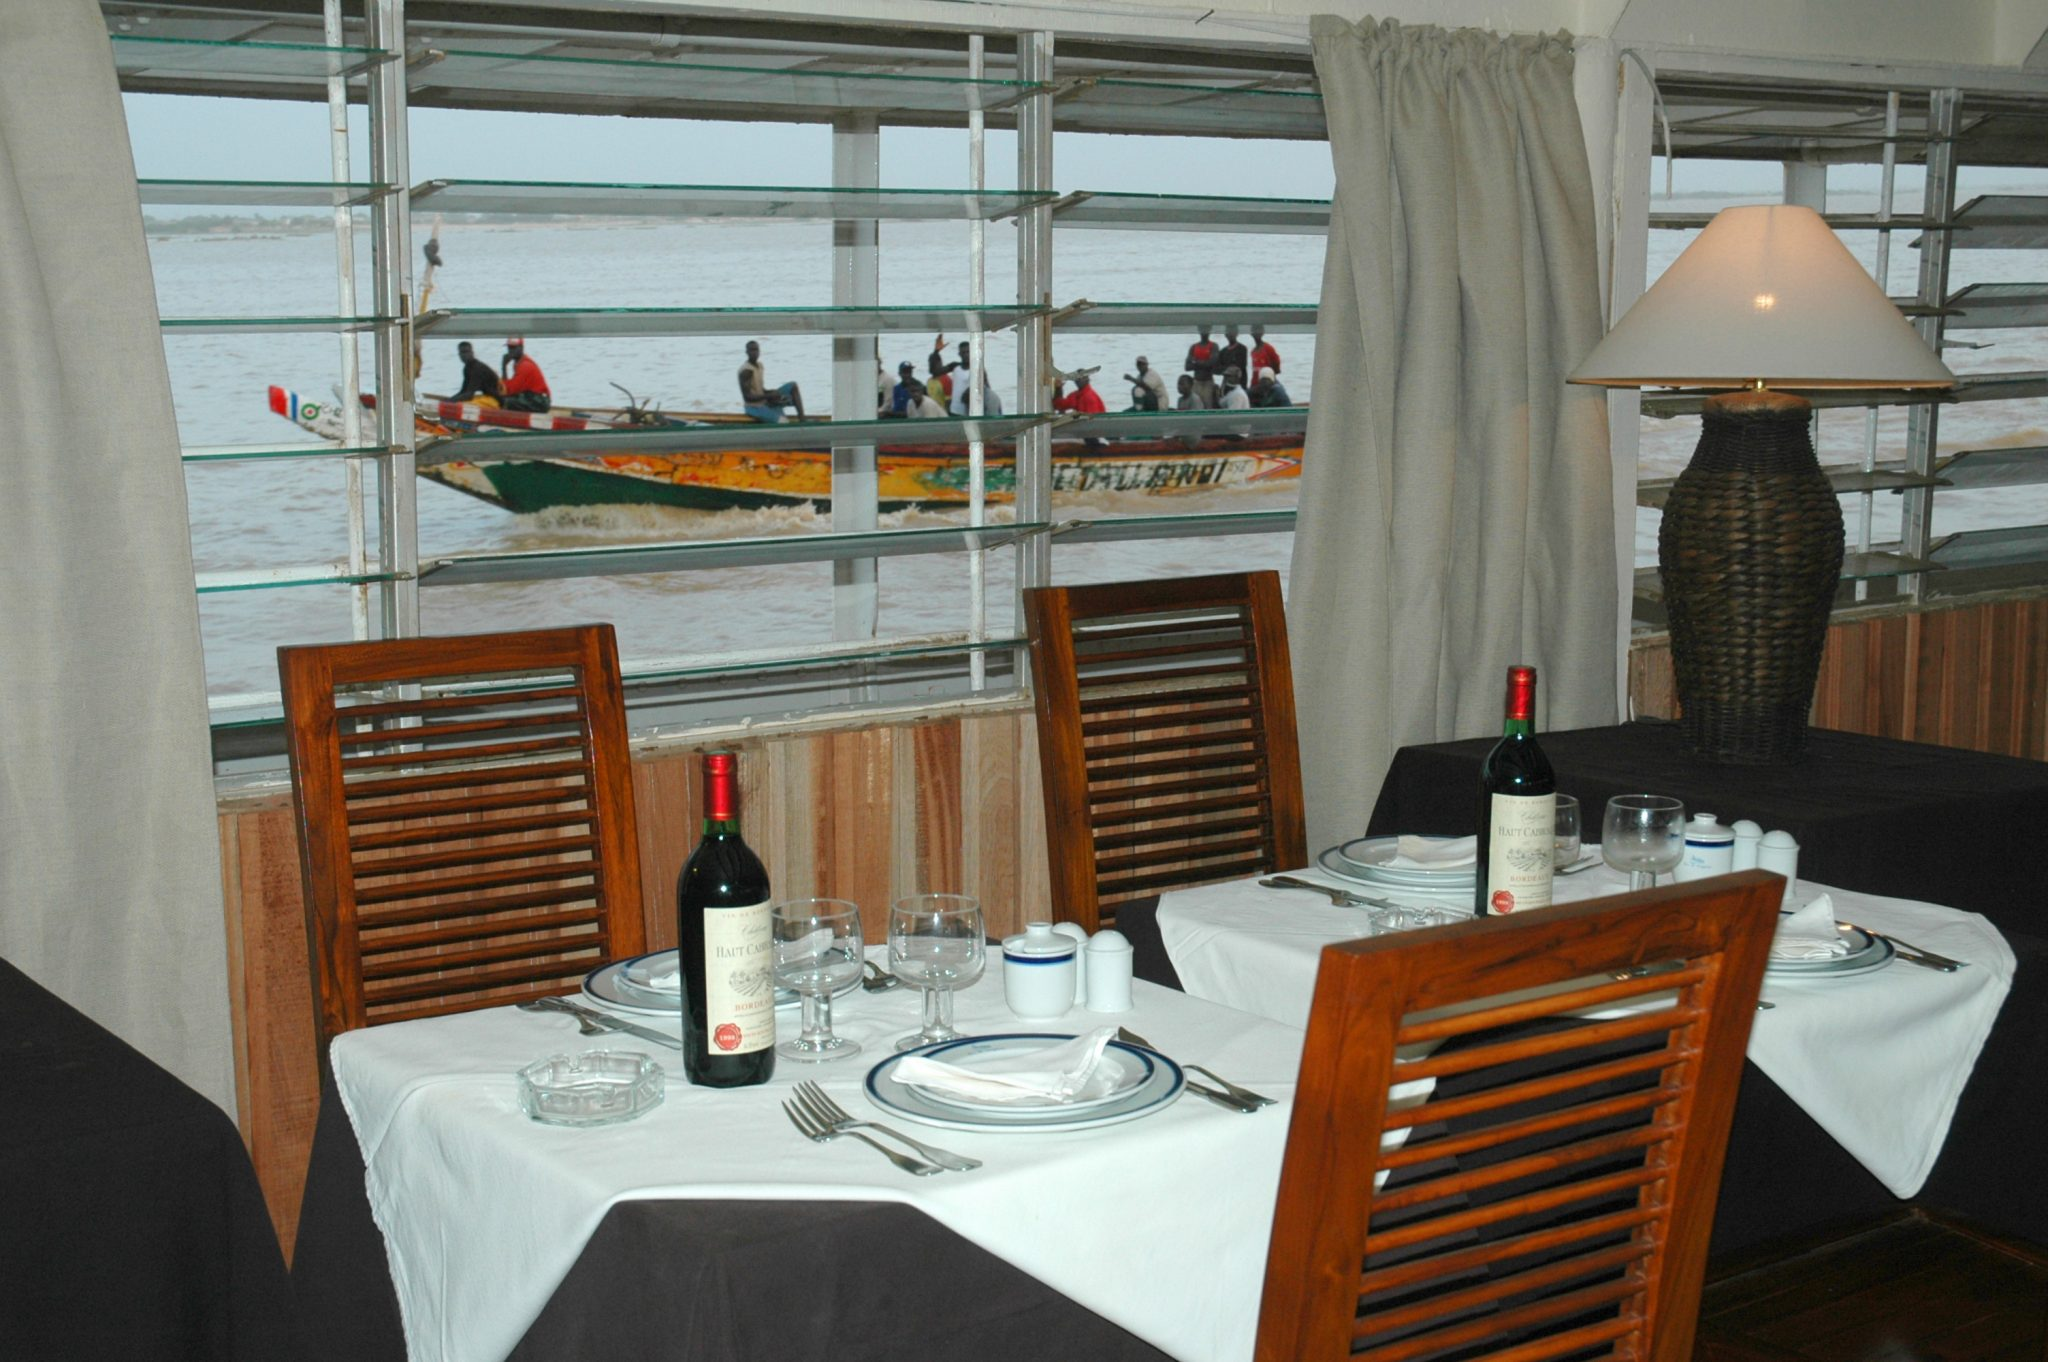 Dining Room, the White Boat Called Bou el Mogdad